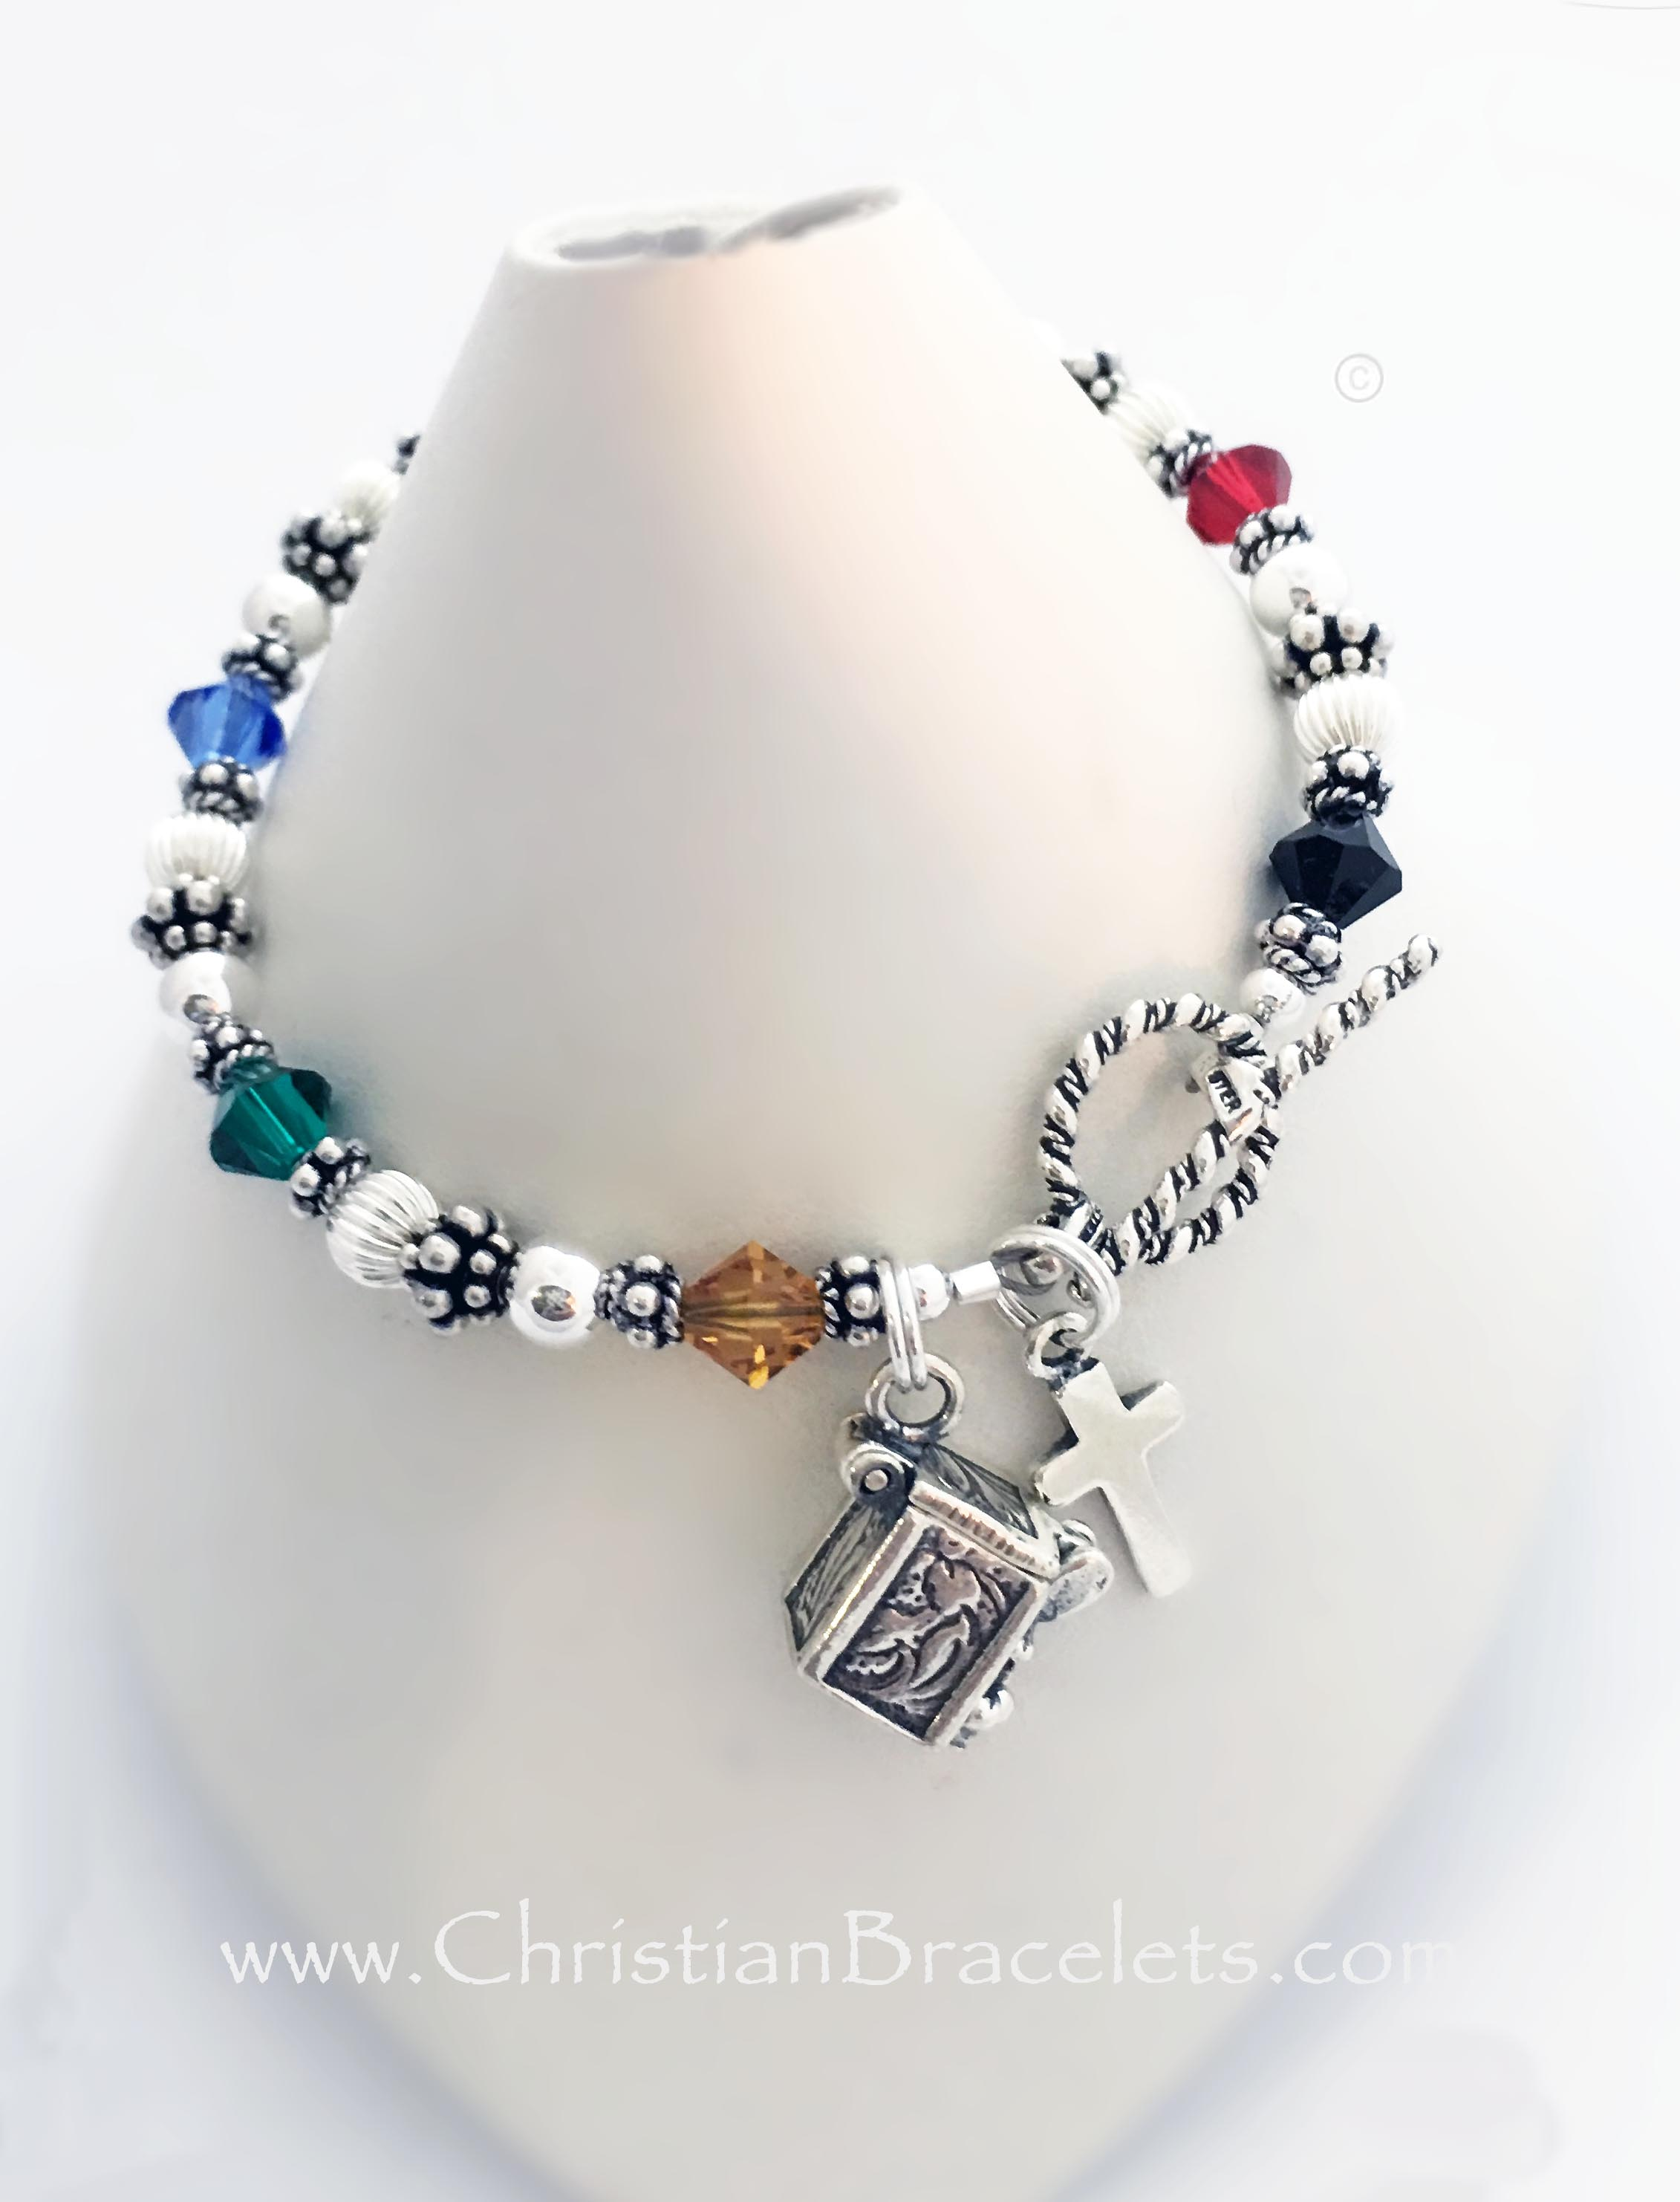 Bali Bicone Salvation Bracelet with a Cross Charm and a Twisted Toggle Clasp.CB-Salvation-5-Sterling-Silver*Shown with 1 add-on charm: Prayer Box Charm*